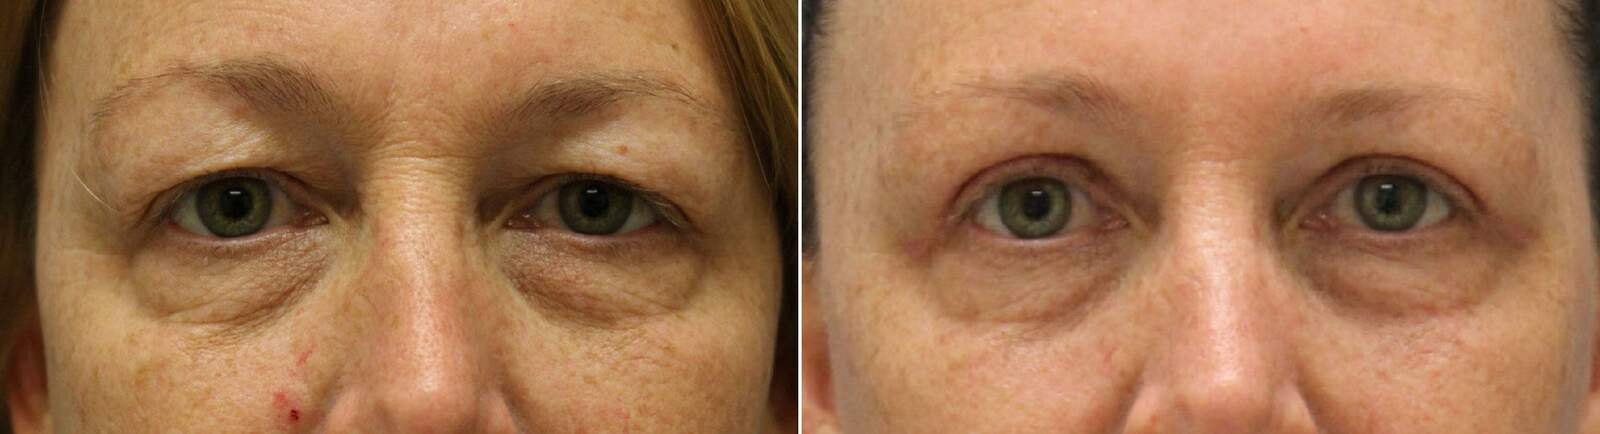 Before and After Photos in , , Blepharoplasty in Lexington, KY